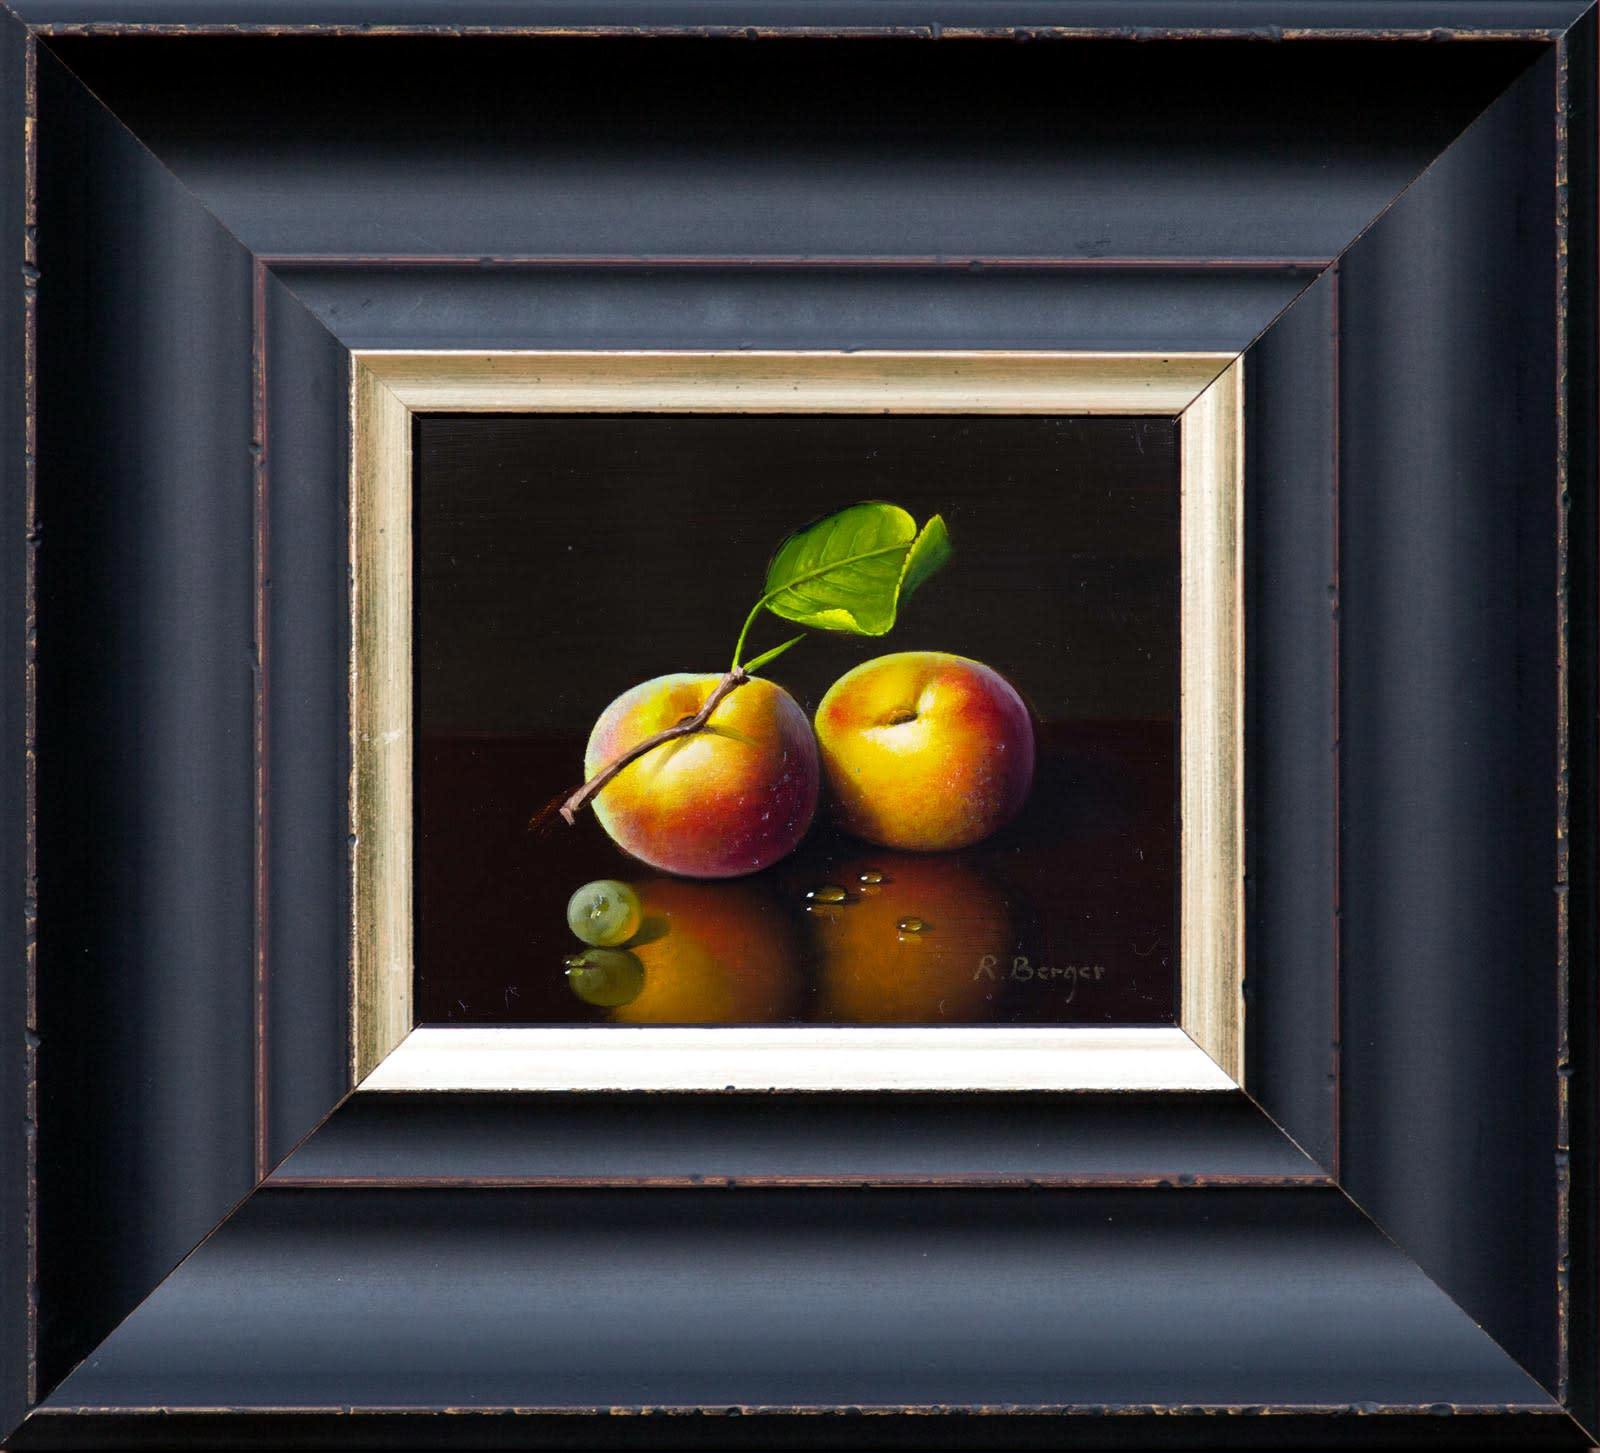 Two Peaches, Ronald Berger